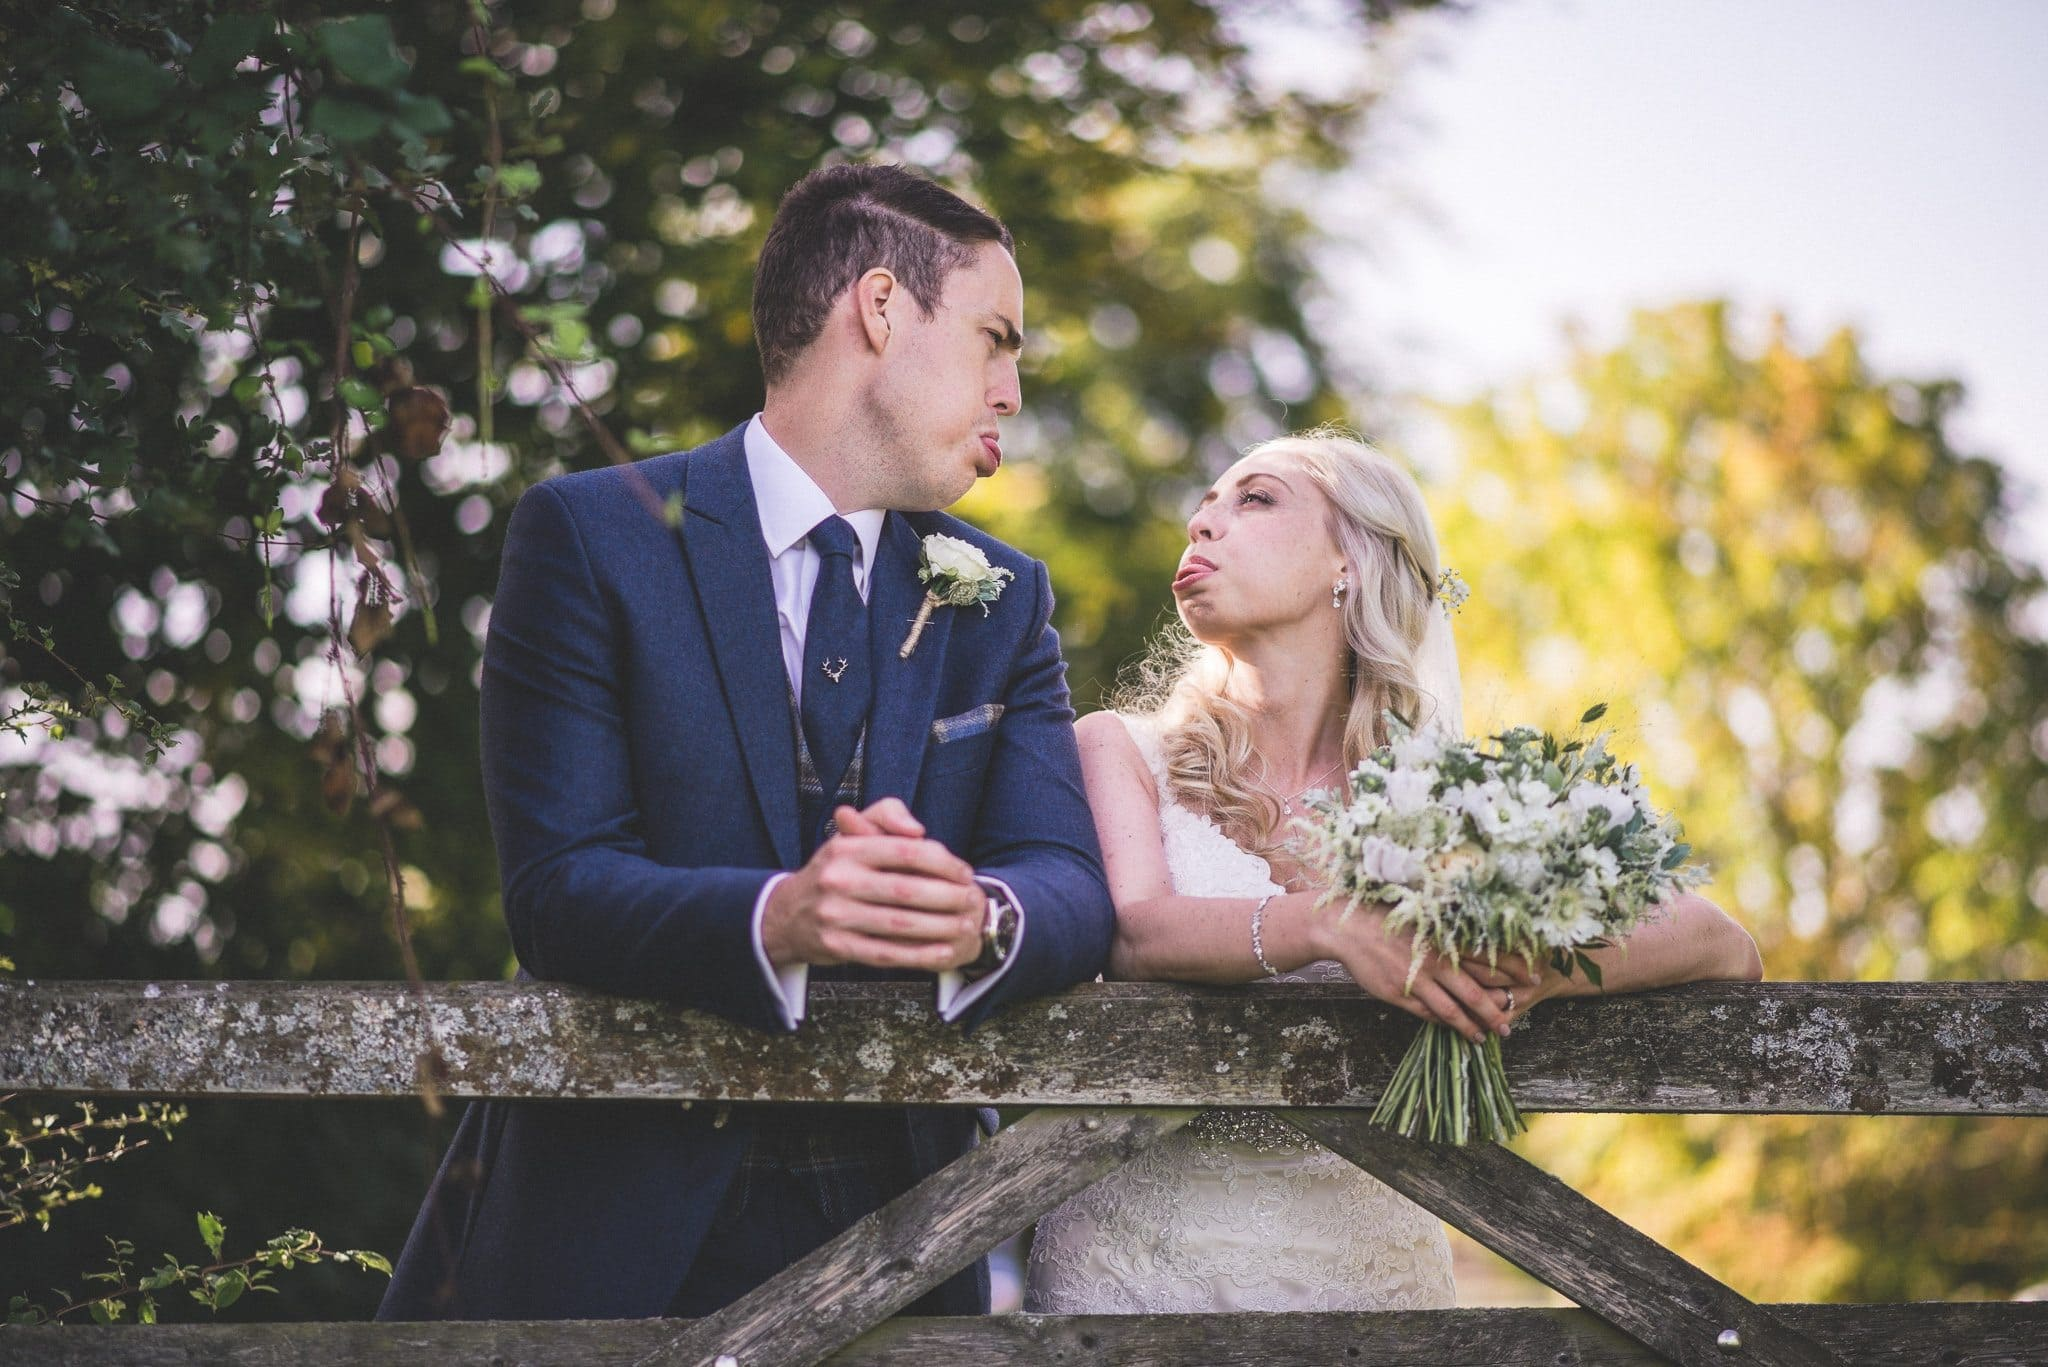 Emma and Phil blow raspberries at each other on their couple's shoot at their fun Gate Street Barn wedding